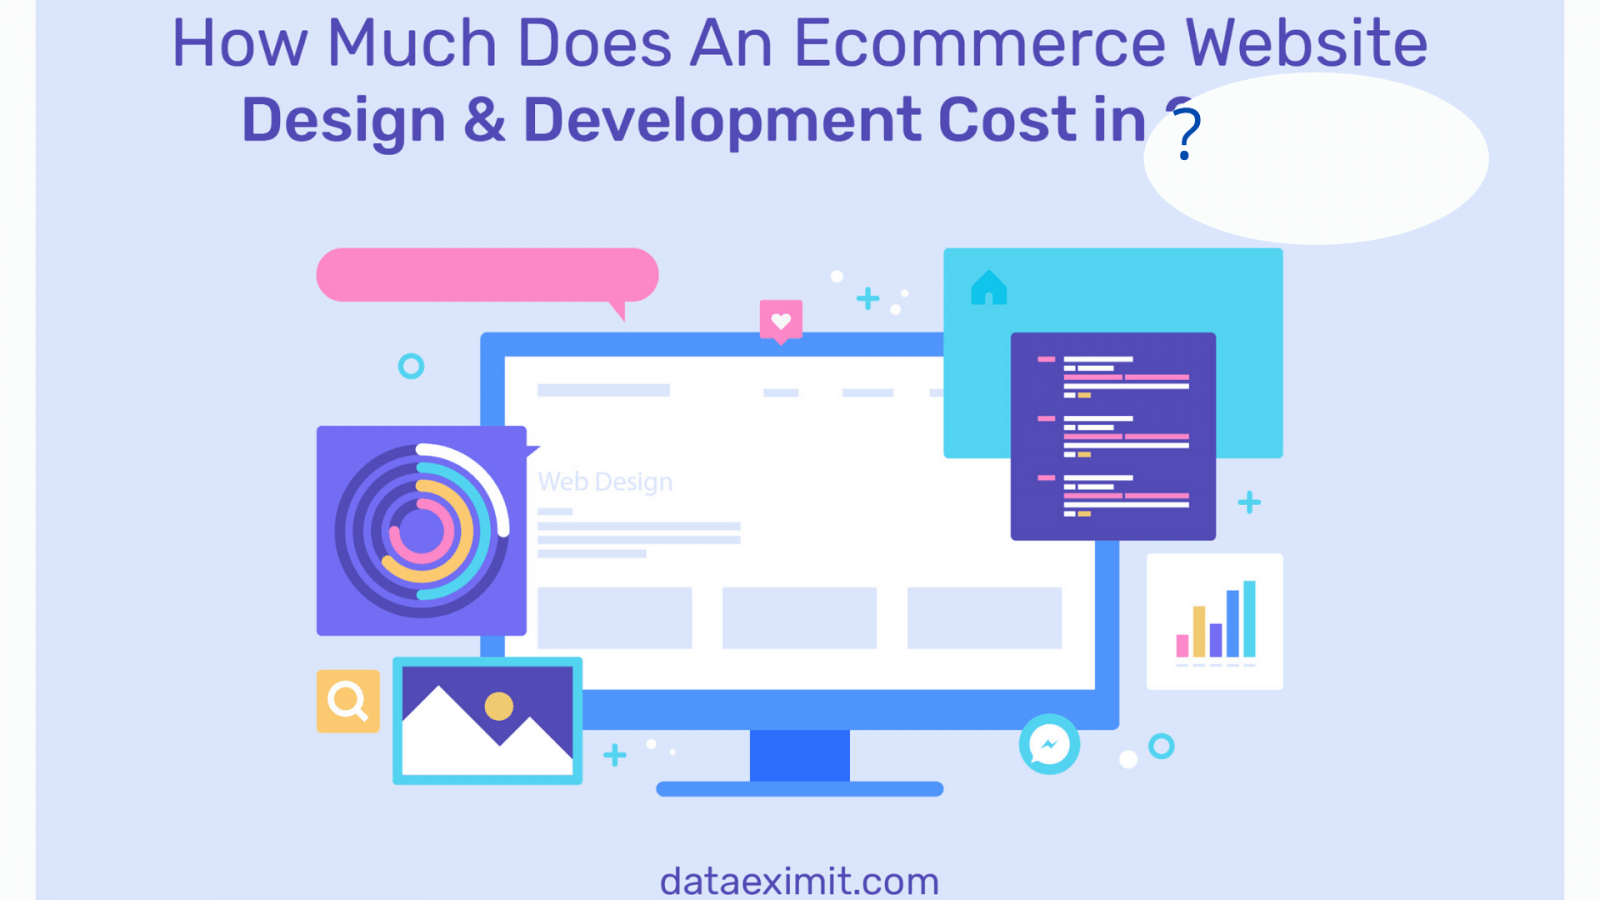 How Much does an Ecommerce website design and development cost?